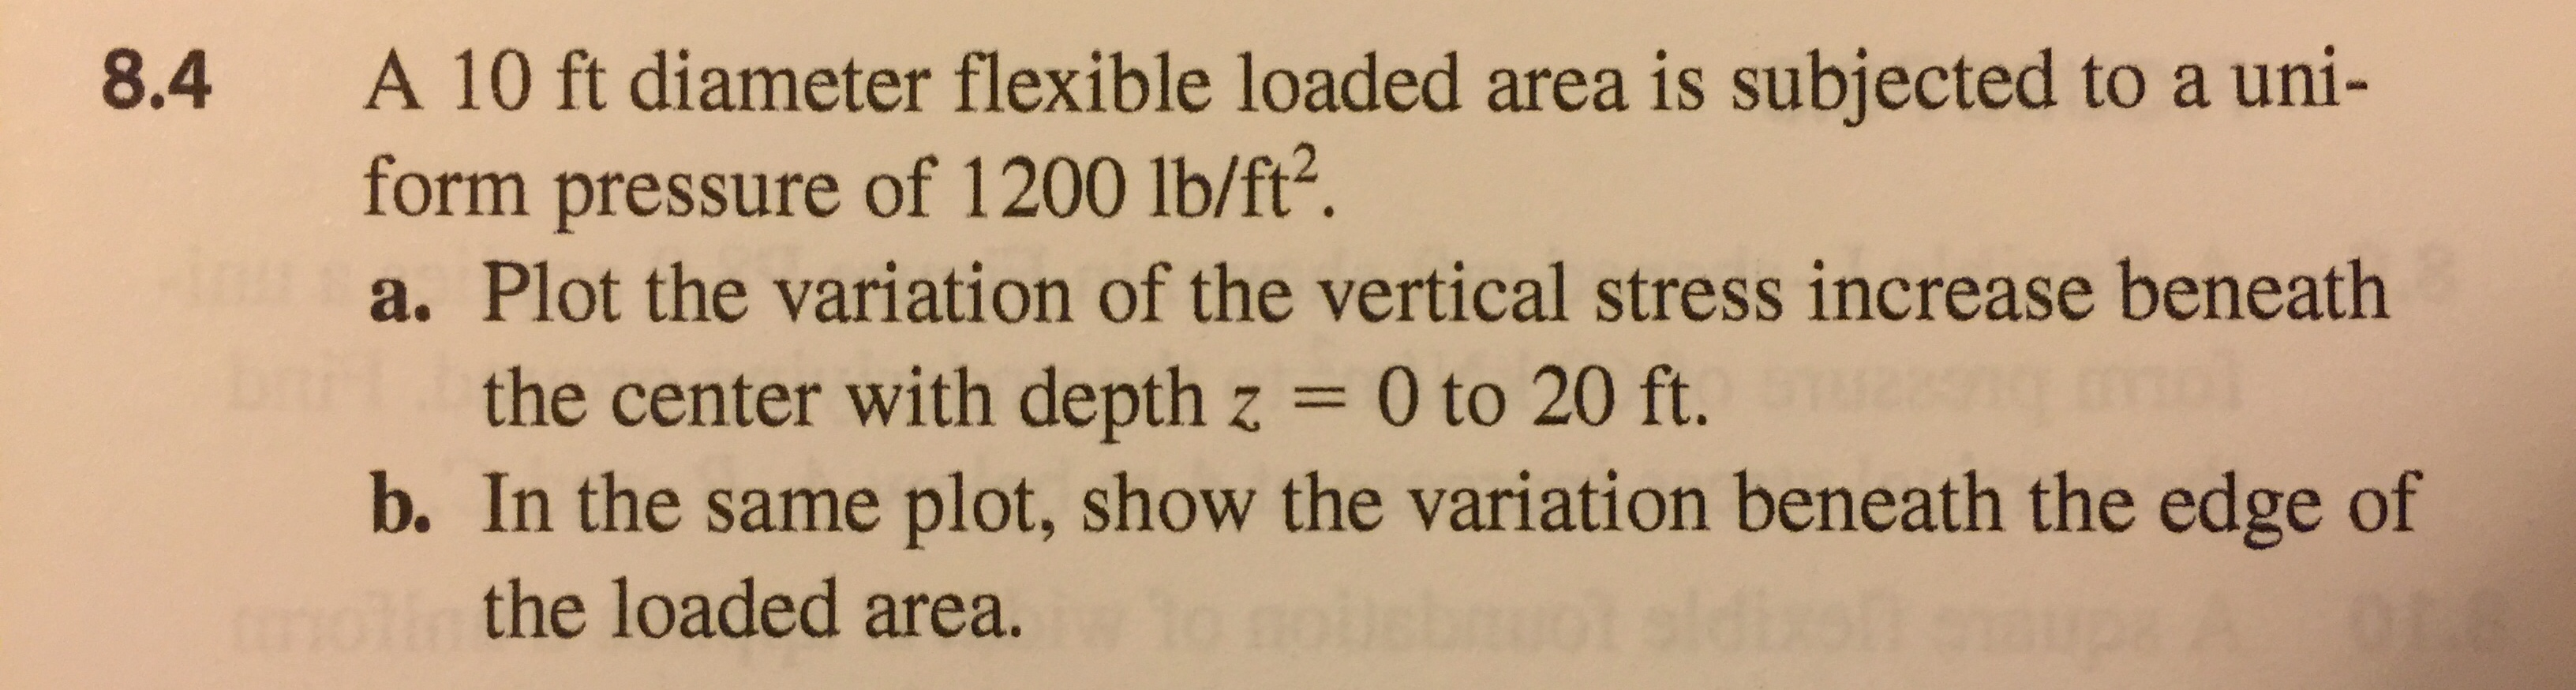 A 10 ft diameter flexible loaded area is subjected to a uni- form pressure of 1200 lb/ft?. a. Plot the variation of the vertical stress increase beneath 8.4 the center with depth z = 0 to 20 ft. b. In the same plot, show the variation beneath the edge of the loaded area.